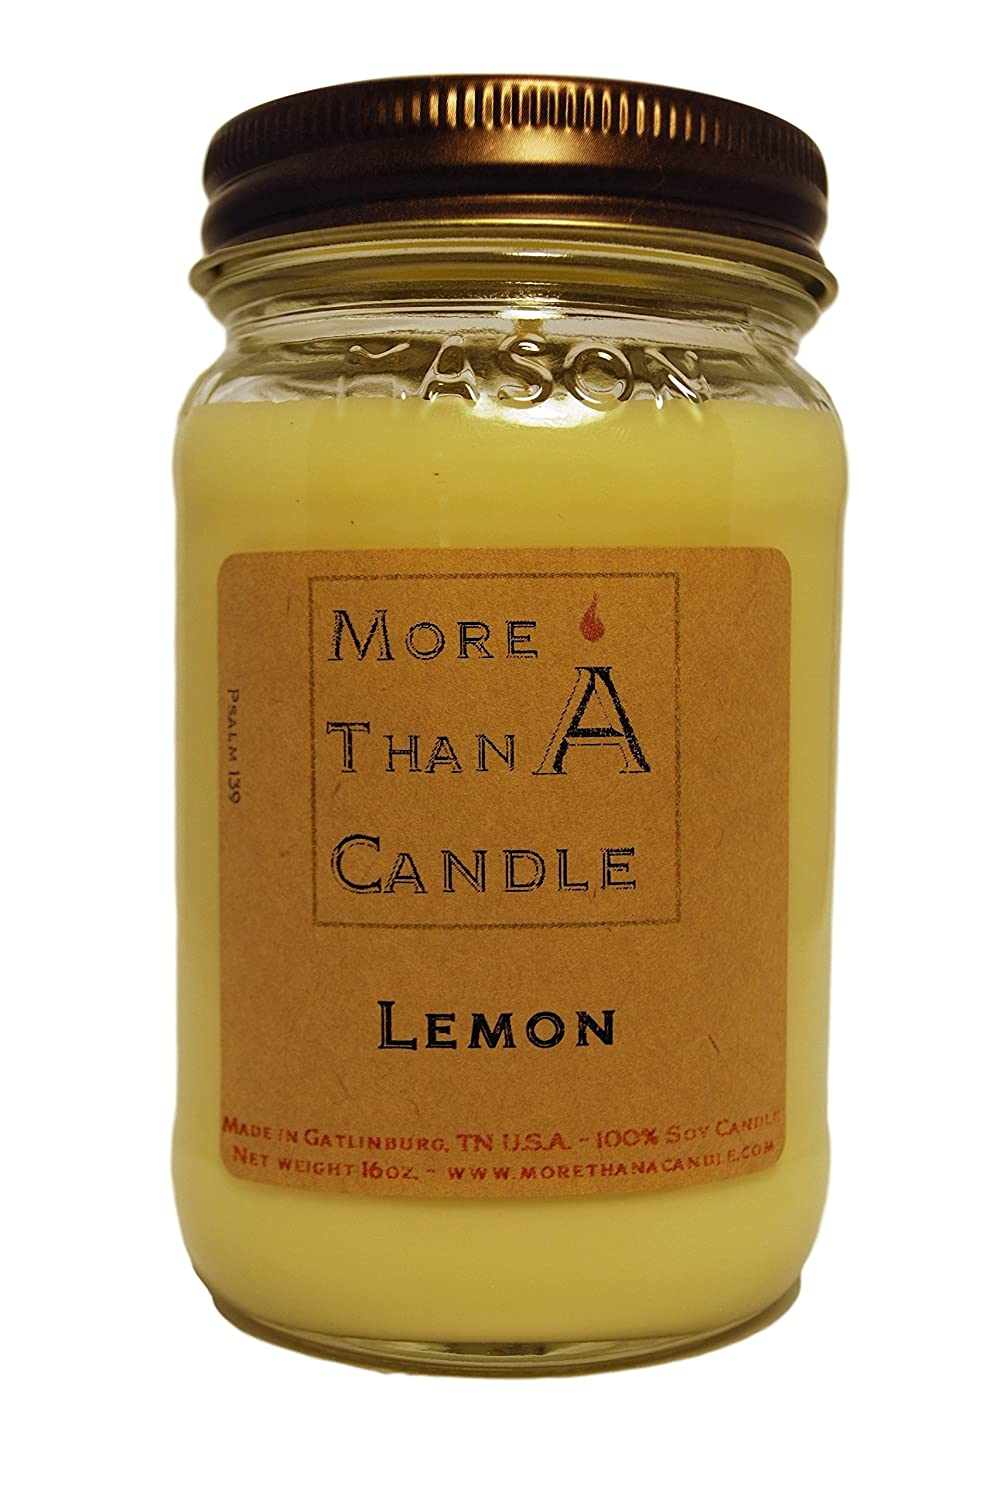 More Than A Candle LMN16M 16 oz Mason Jar Soy Candle, Lemon B079QH8RF9